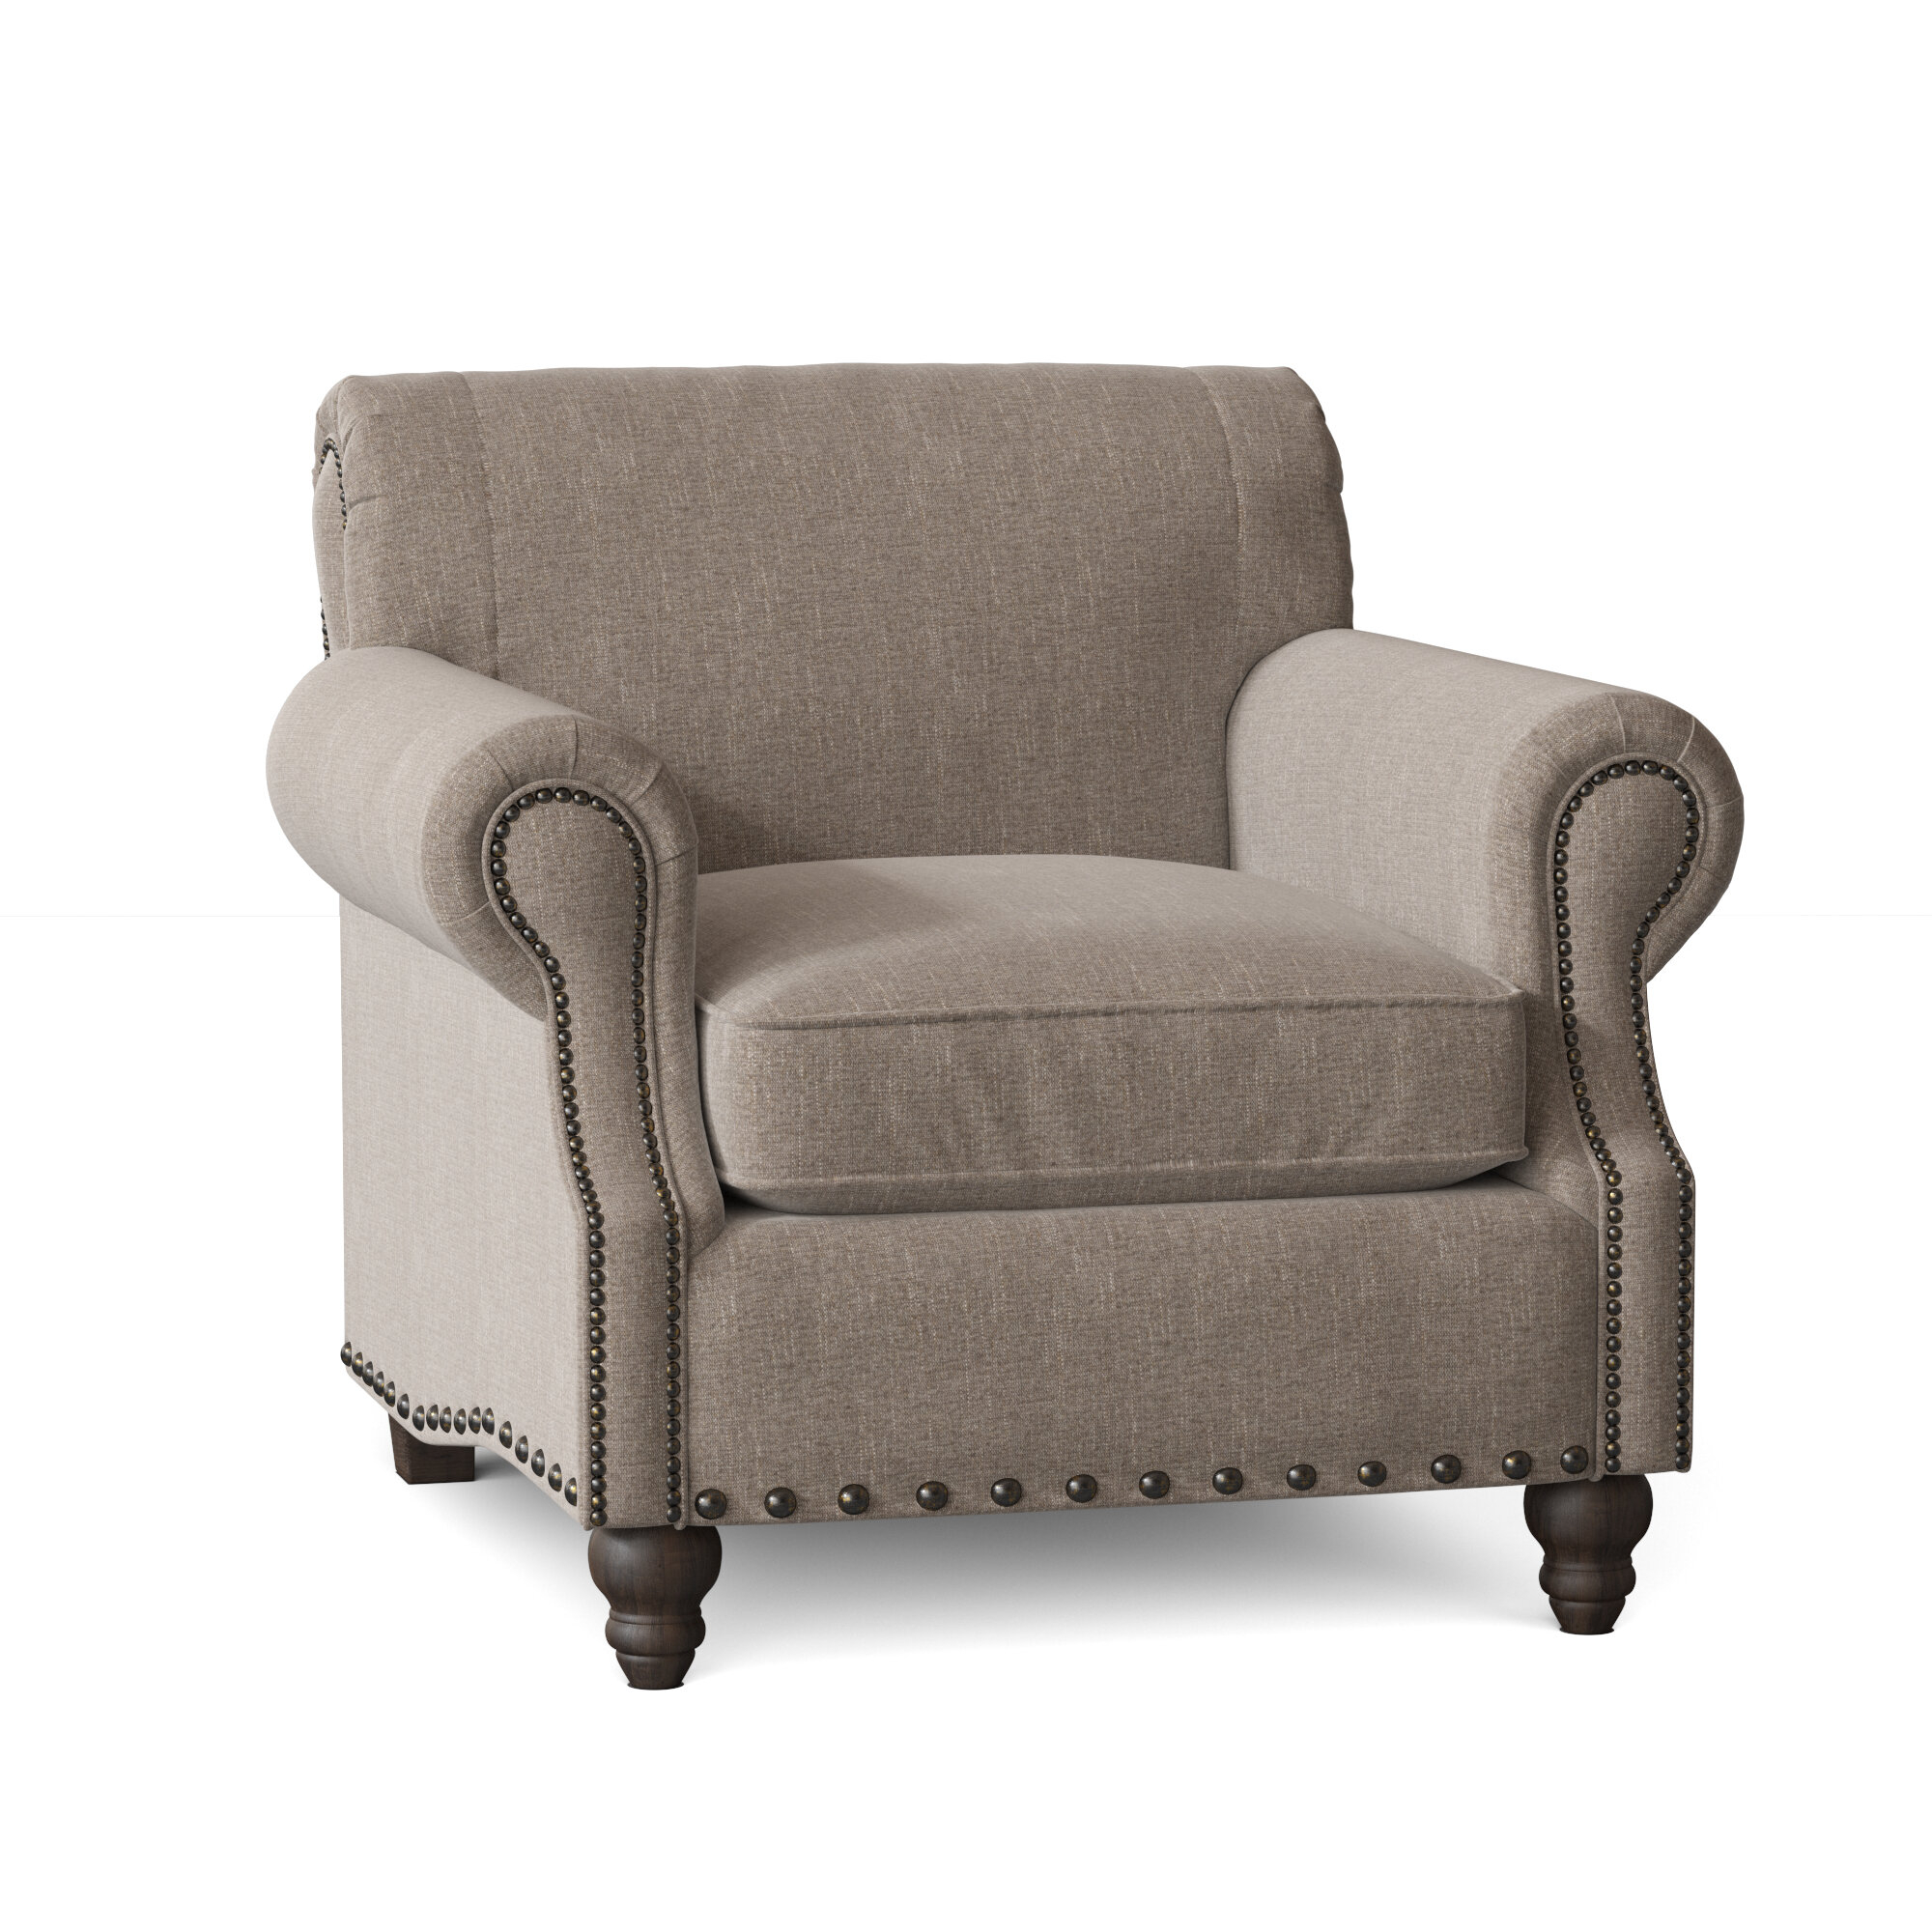 Silver Birch Lane™ Accent Chairs You'Ll Love In 2021 | Wayfair With Regard To Young Armchairs By Birch Lane (View 12 of 15)